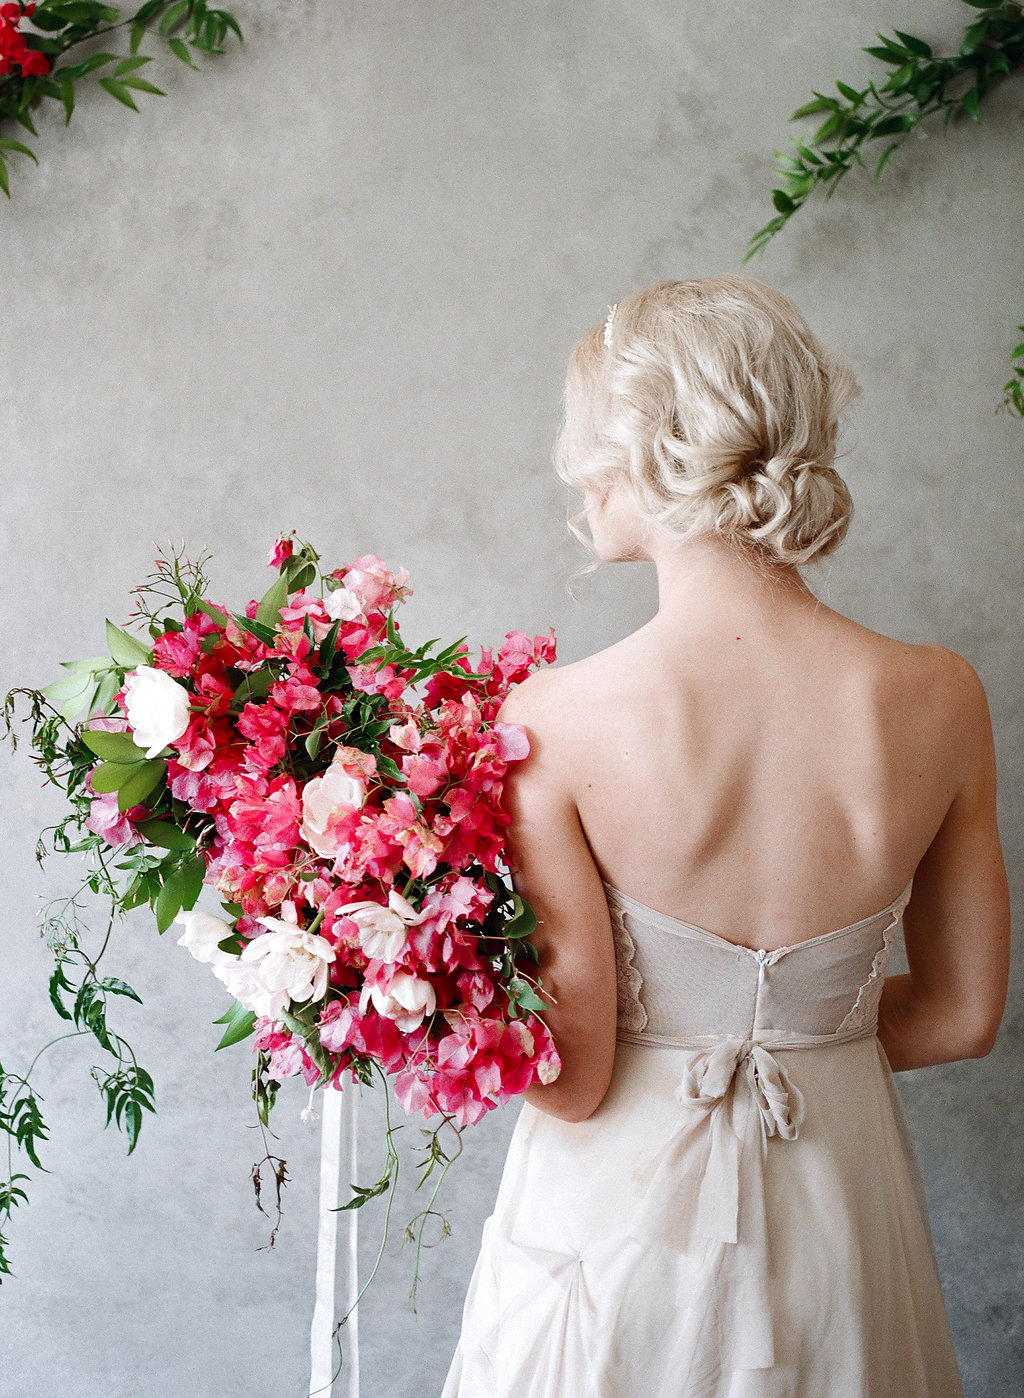 Valentine's Day Wedding | Ball Photo Co. | Pink and White Wedding | Fine Art Wedding | Joy Wed | Red and White Wedding | Pink Wedding Bouquet | Wedding Blog | Wedding Inspiration